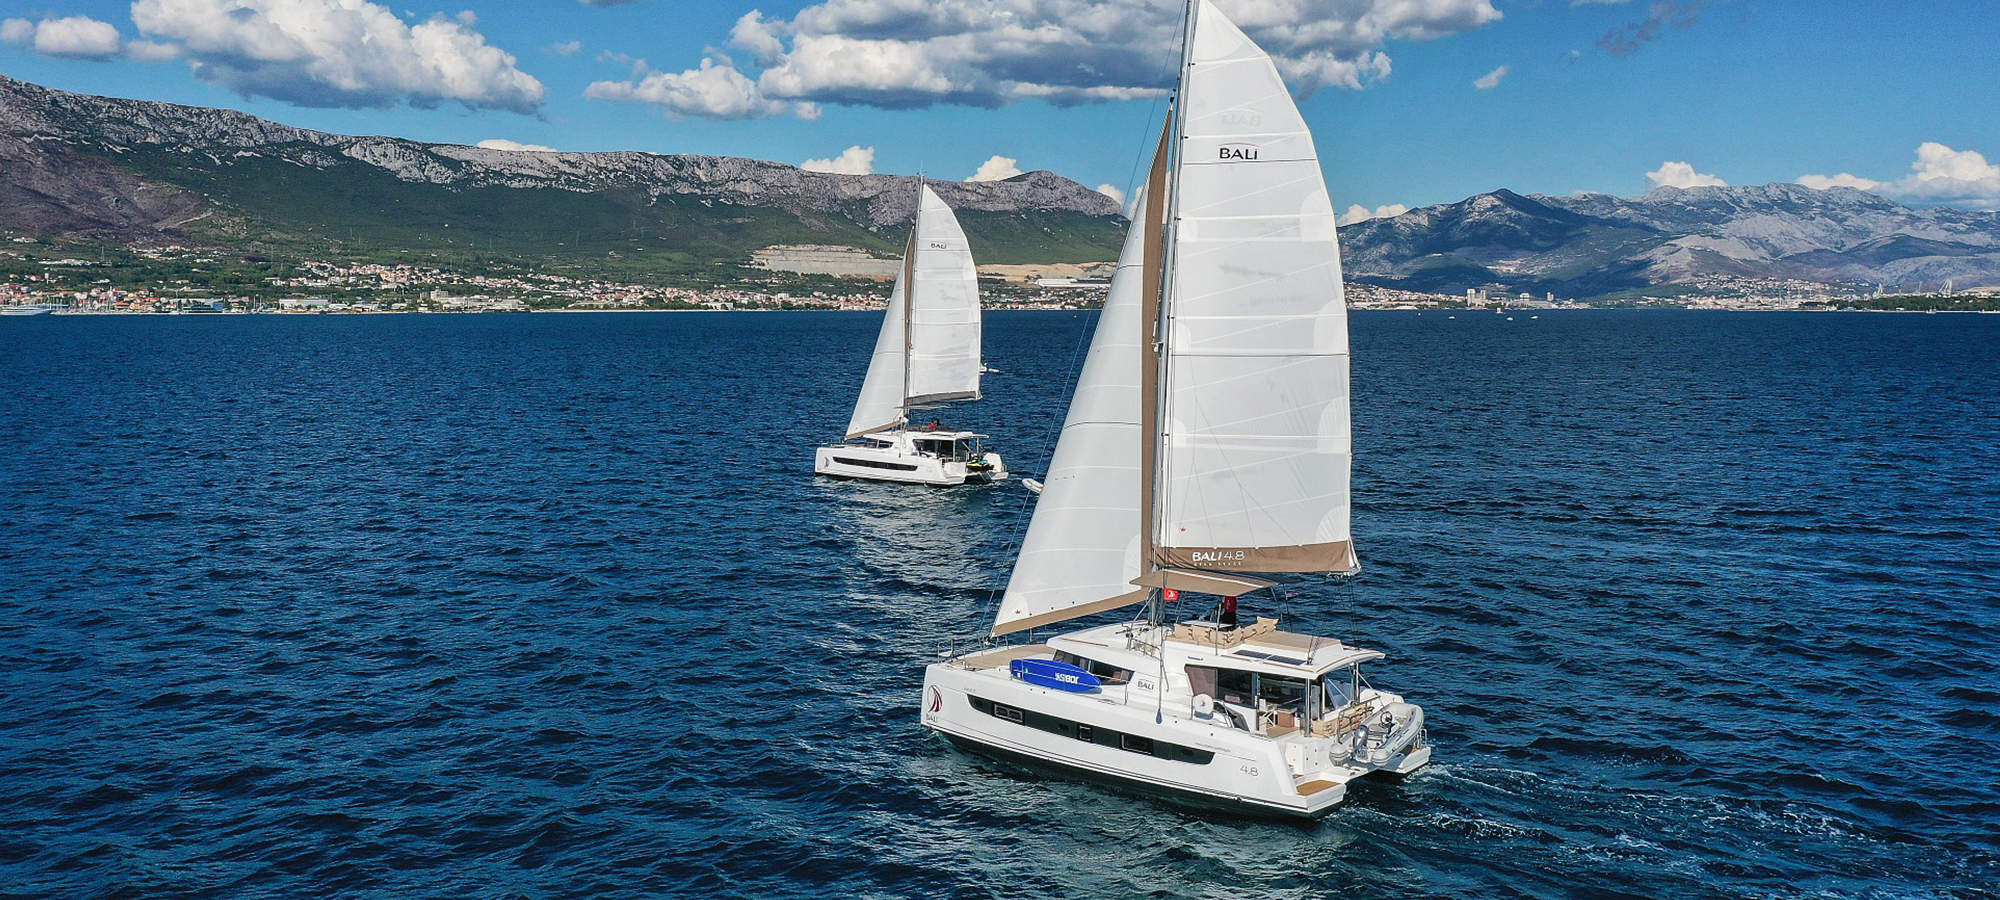 Top 9 new catamarans on the market